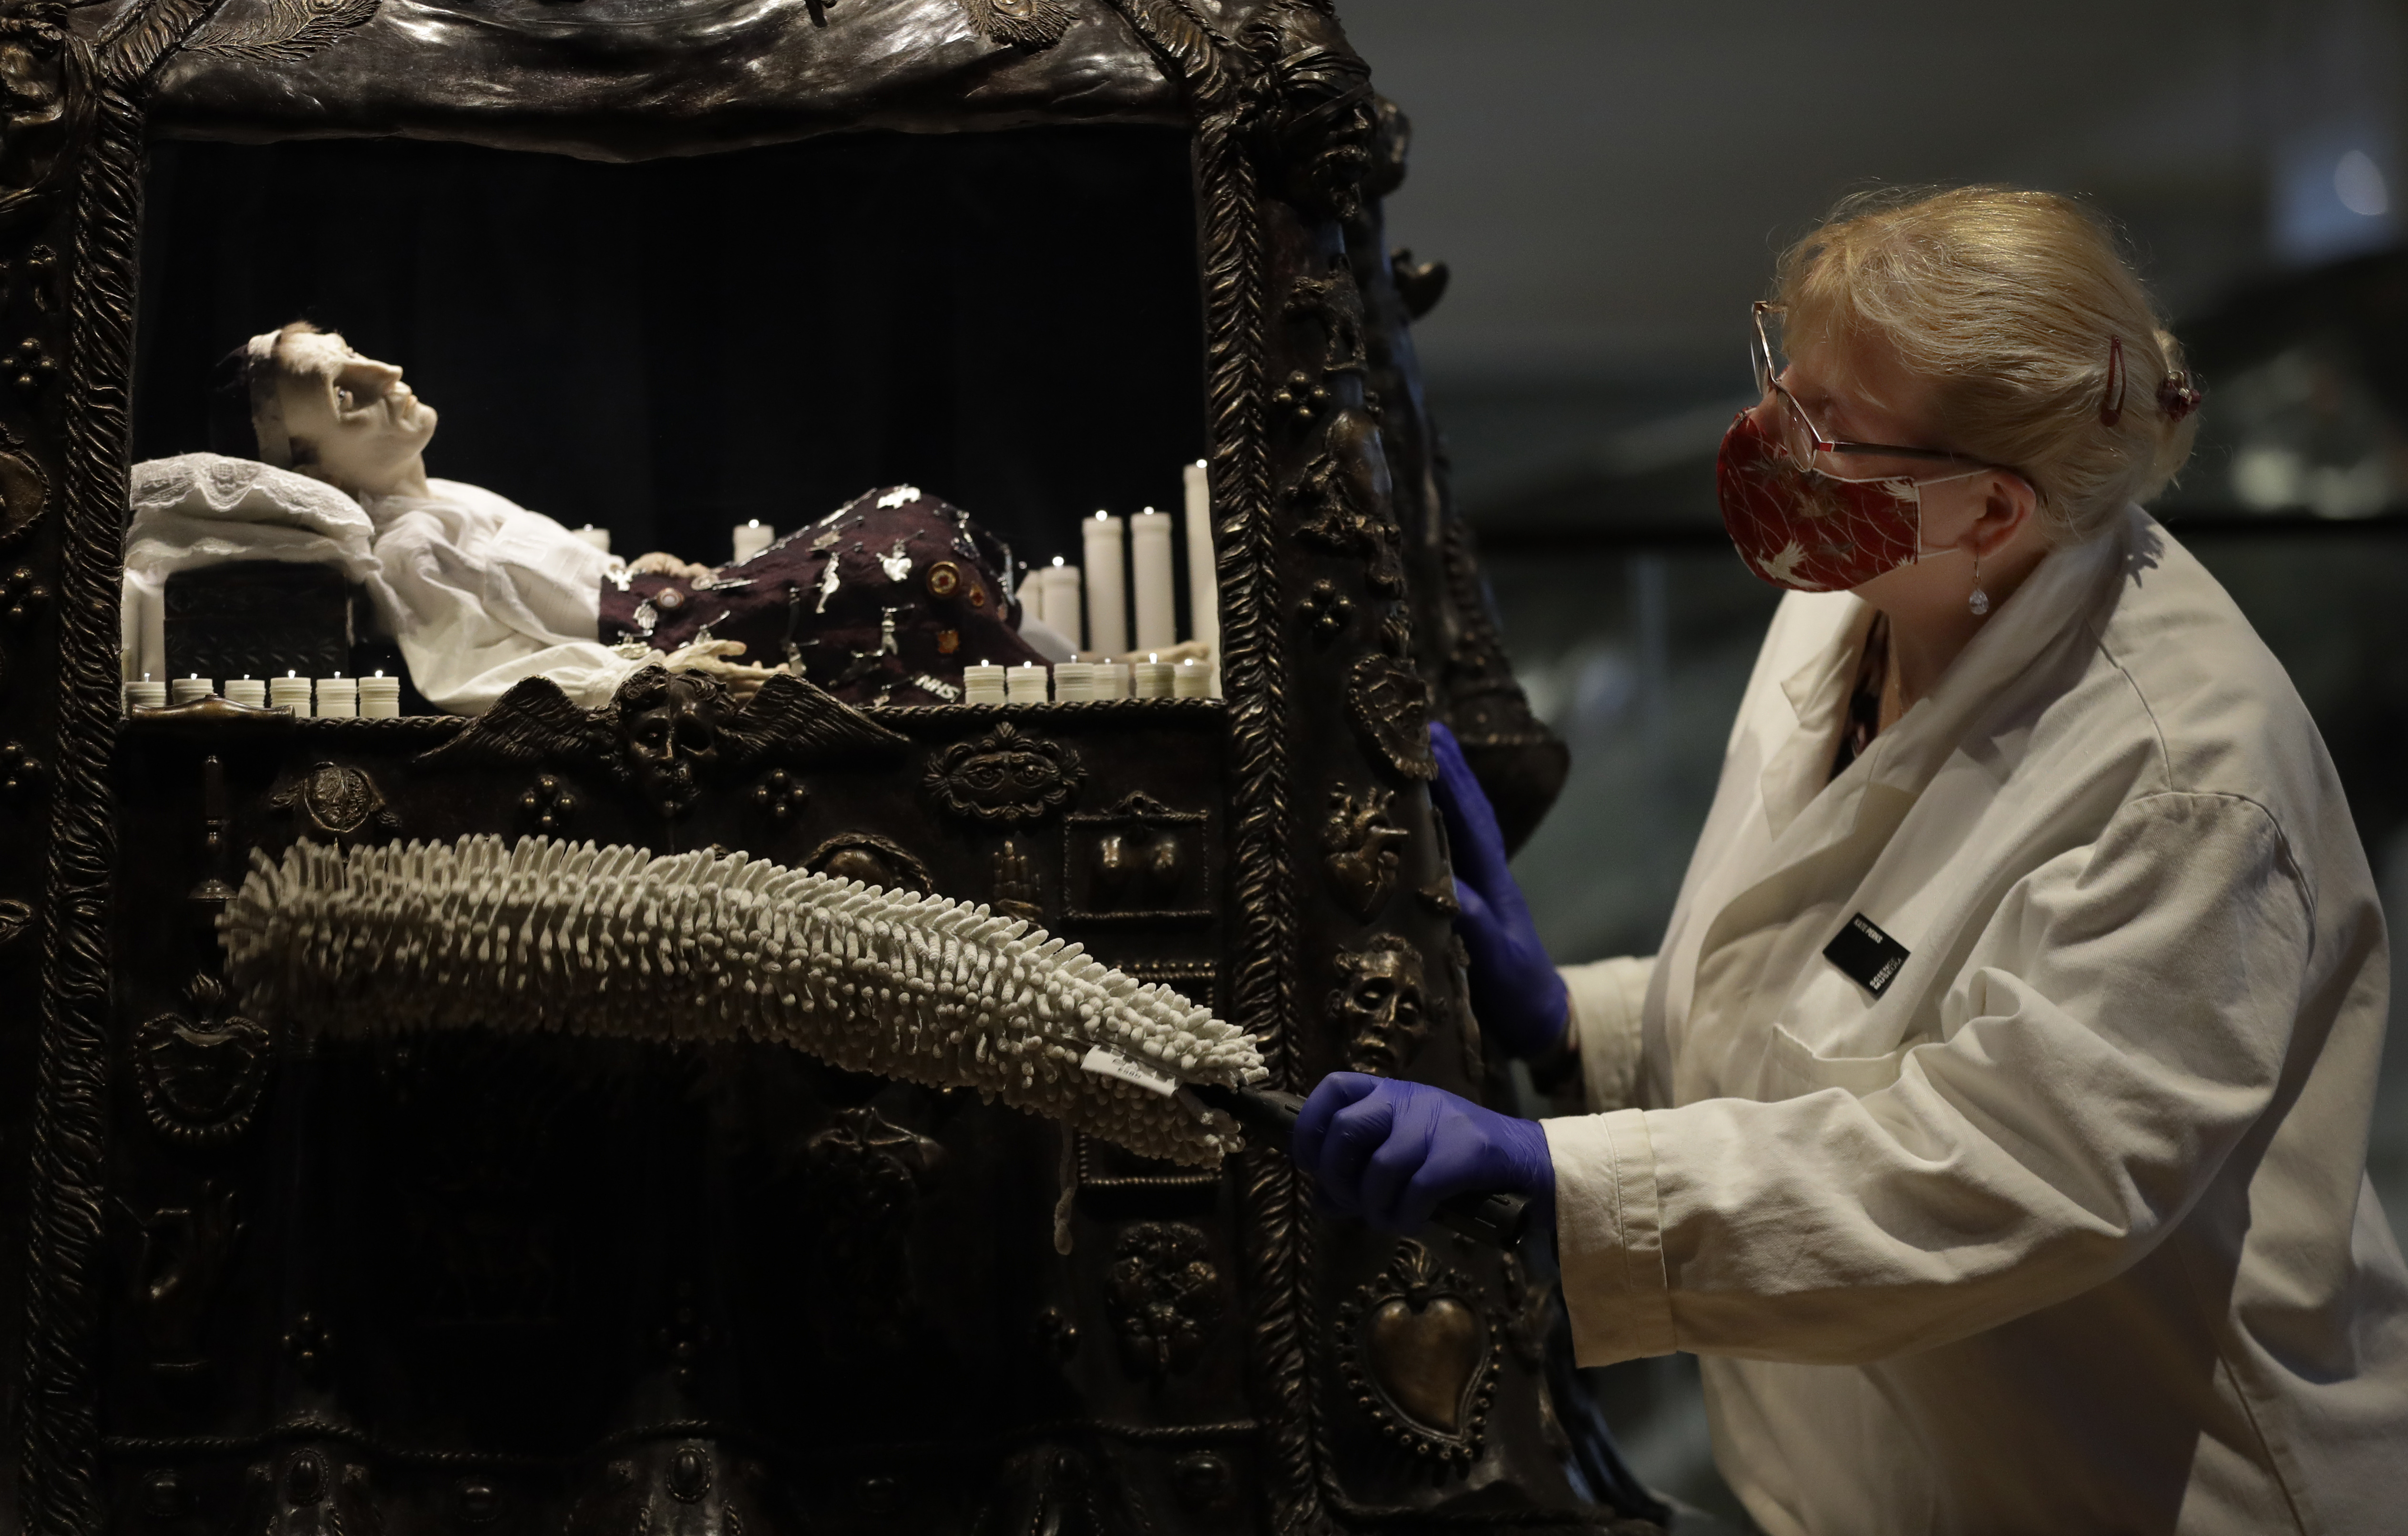 <p>Kate Perks, Senior Collections Care Conservator cleans a sculpture by Eleanor Crook called Santa Medicina, which combines medical and religious symbolism to help us reflect on the frailty of human life, displayed in Medicine: The Wellcome Galleries, at the Science Museum in London, Monday, May 17, 2021. The Science Museurm reopens to the public on Wednesday.  (AP Photo/Kirsty Wigglesworth)</p>